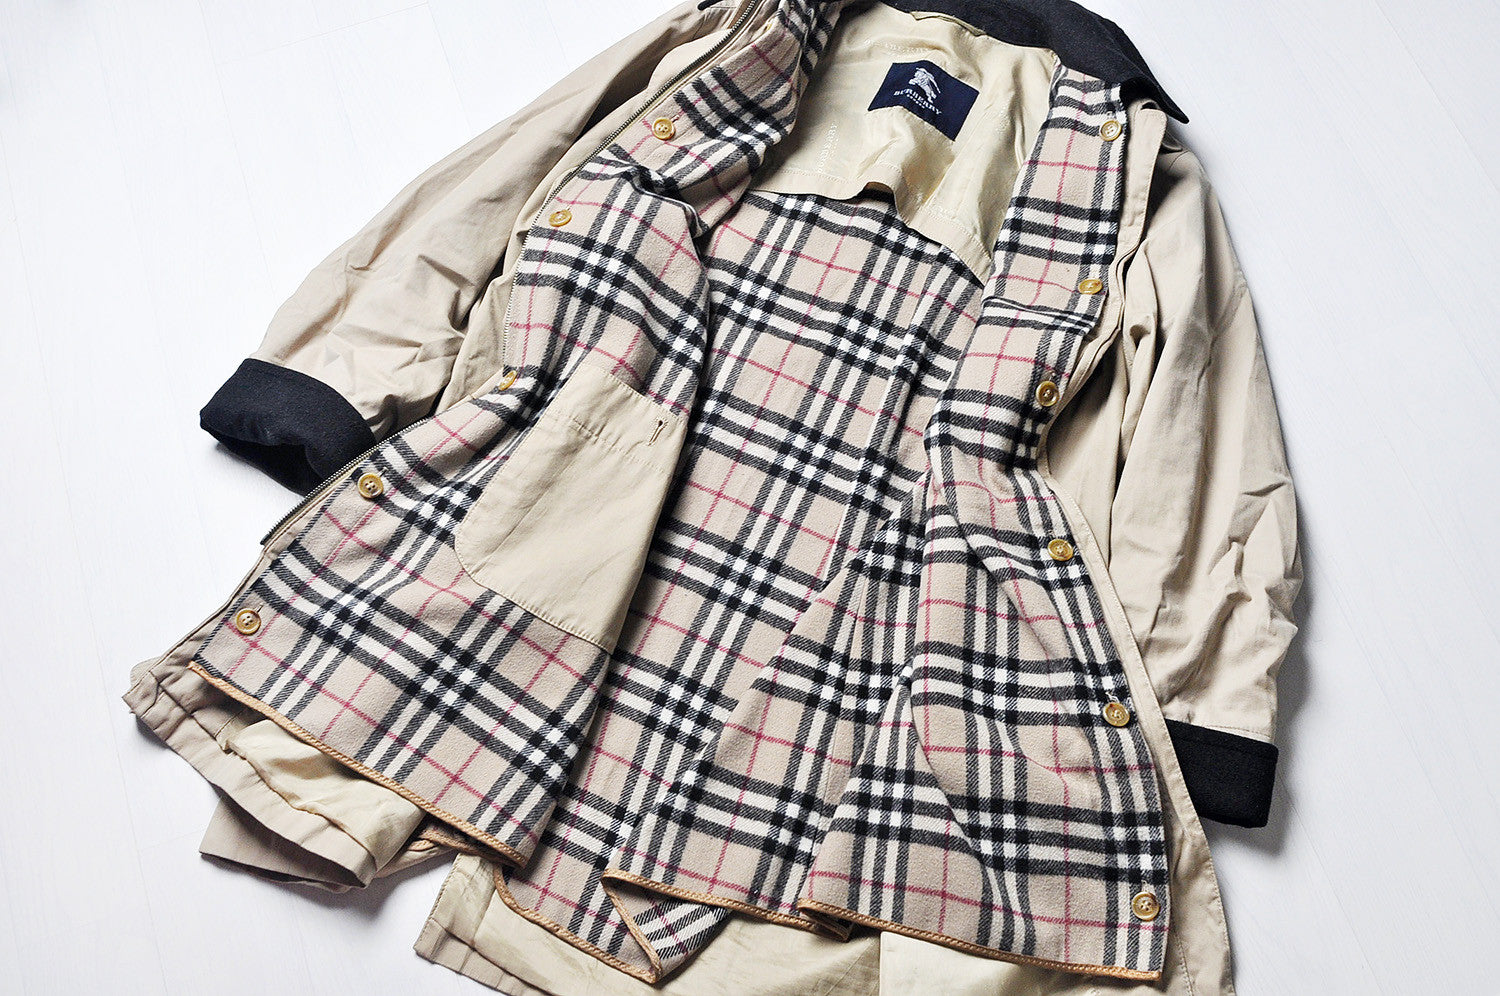 Vintage Burberry Tanned Double Collared Trench/Mac Jacket, Wool Nova Check Inner Layer